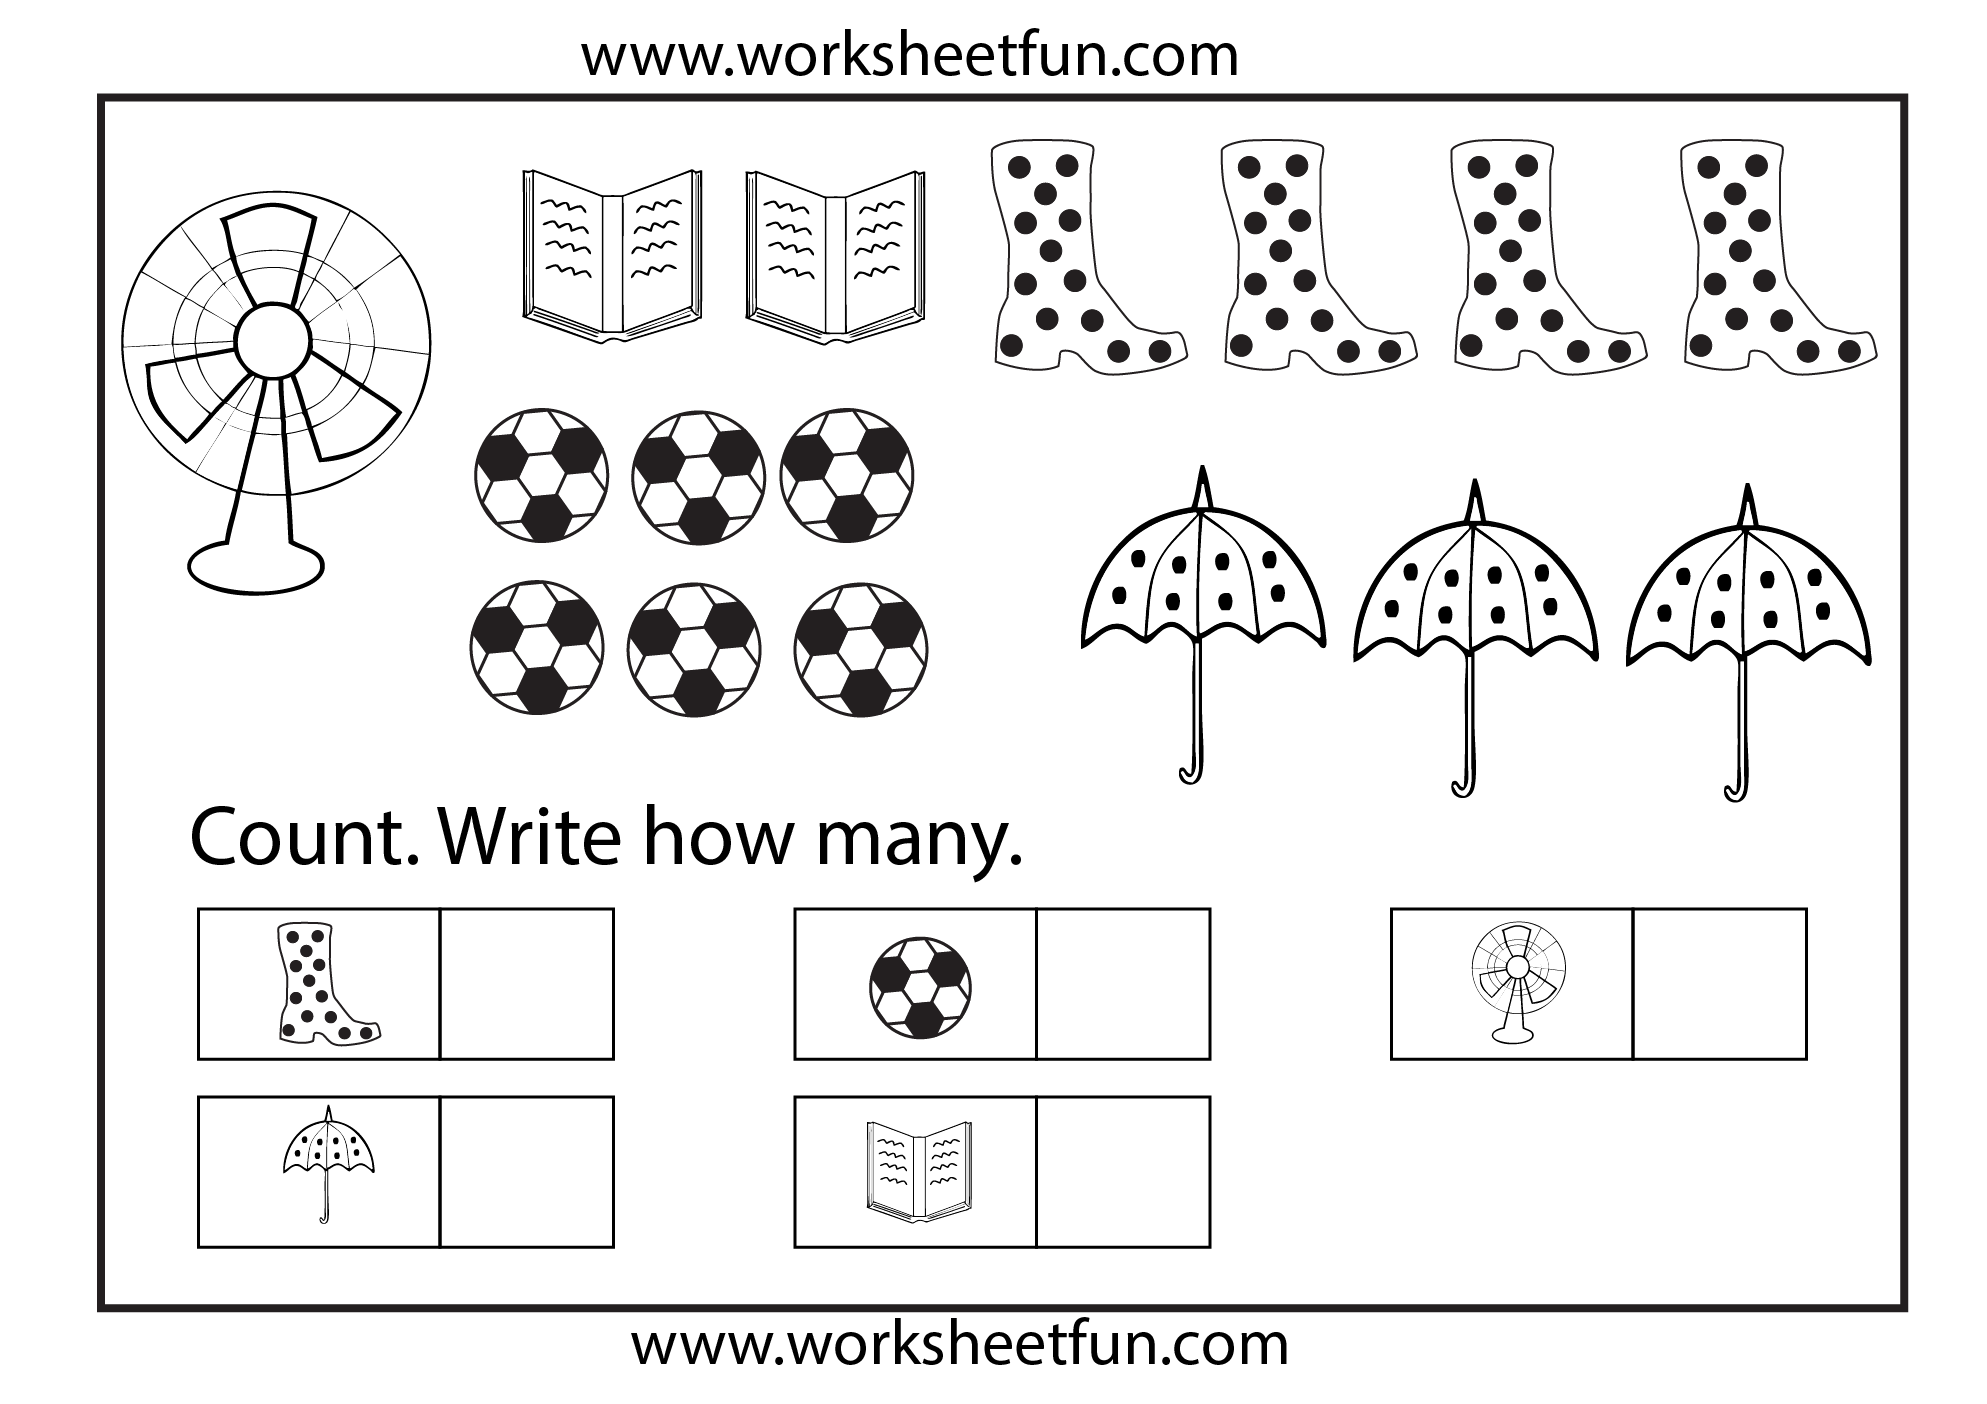 Various Count The Spots Worksheets Here Including